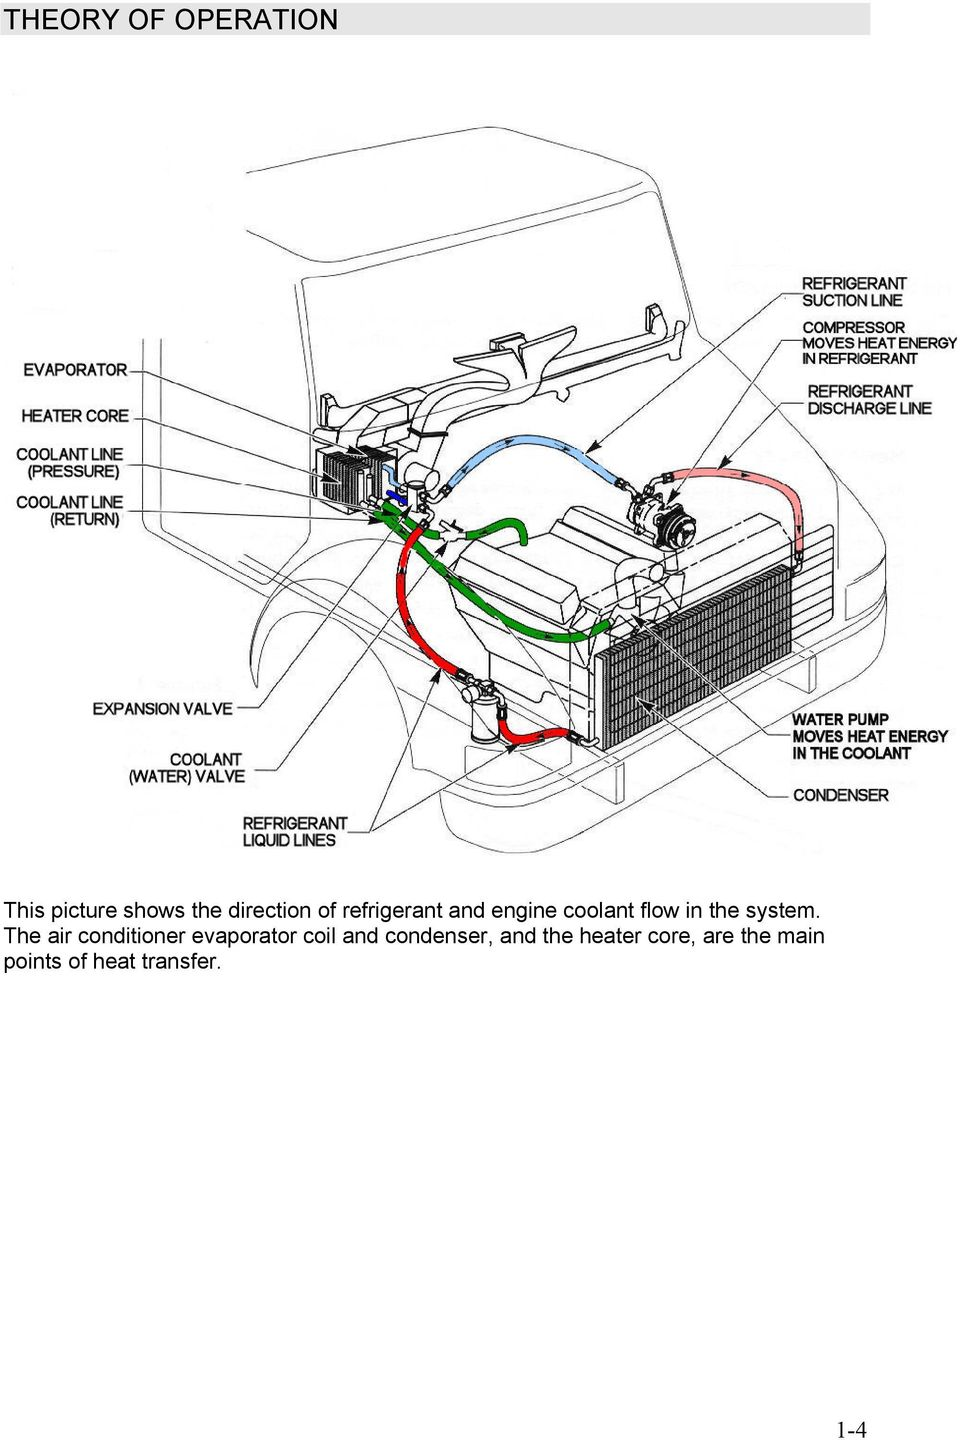 The air conditioner evaporator coil and condenser, and